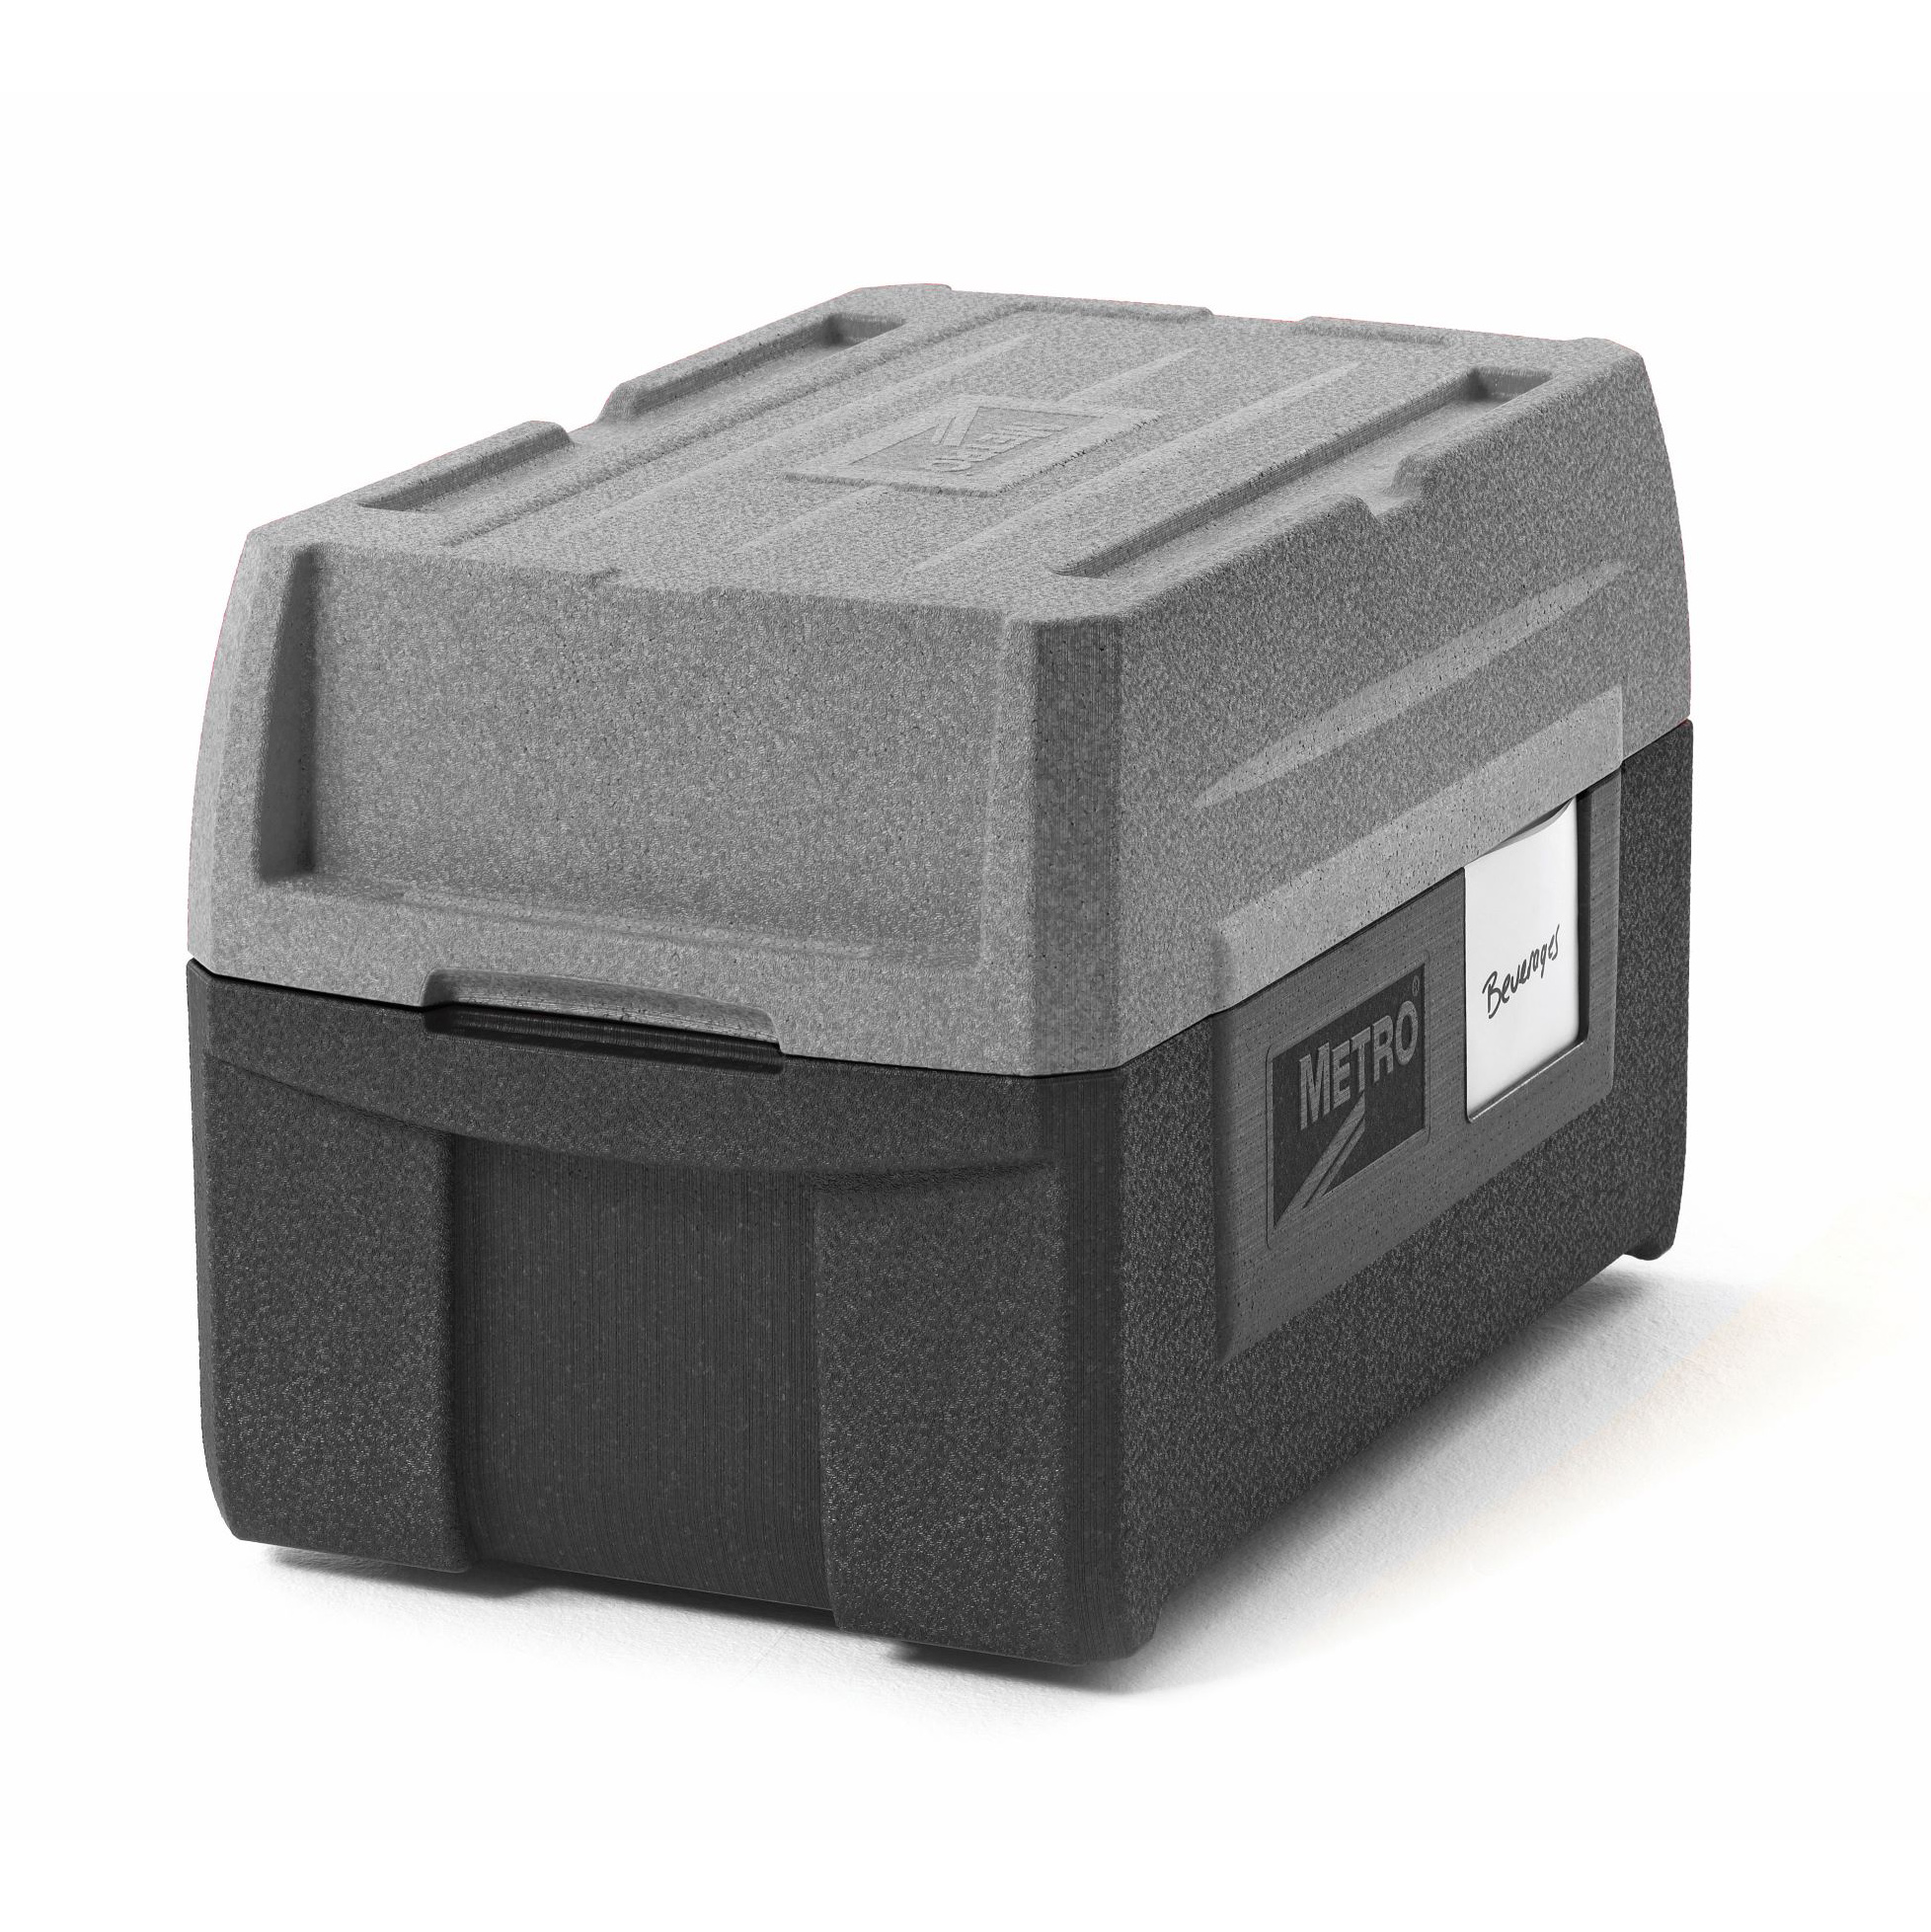 Metro ML180XL-GY food carrier, insulated plastic